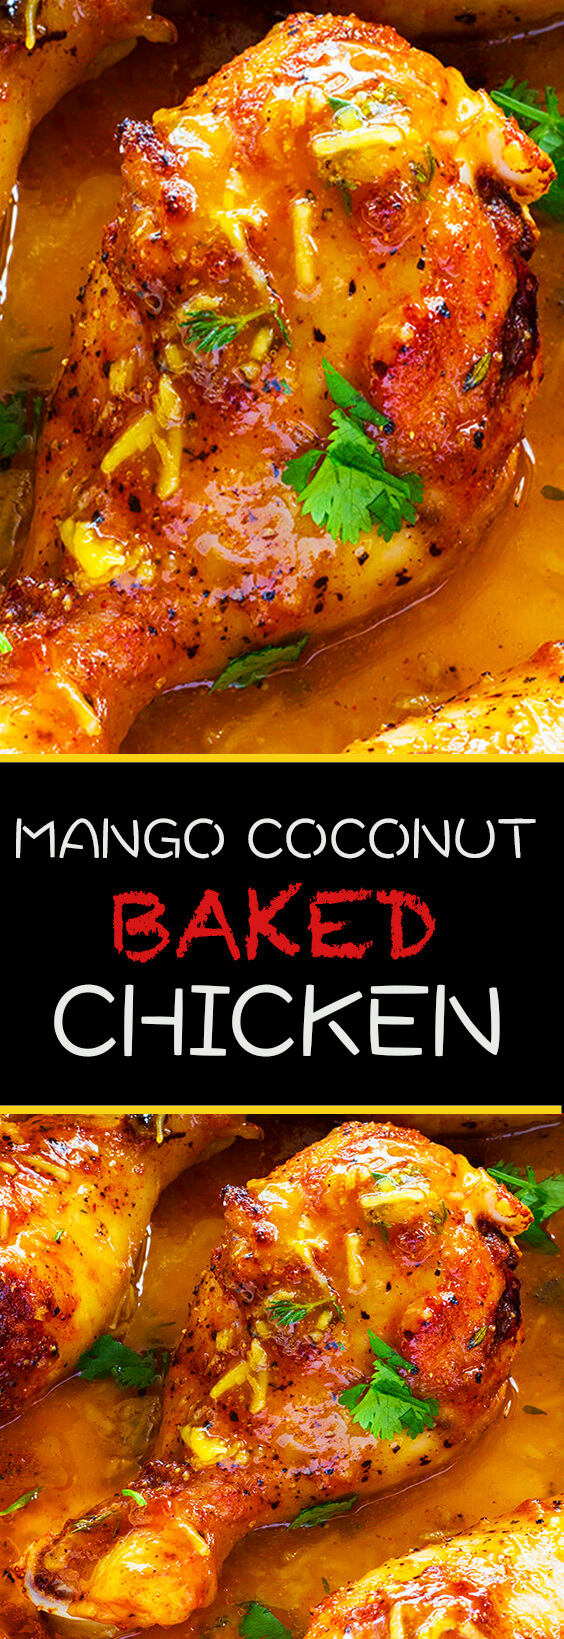 This Mango coconut habanero sauce is the perfect balance of spicy, sweet and tangy for this super easy chicken recipe.